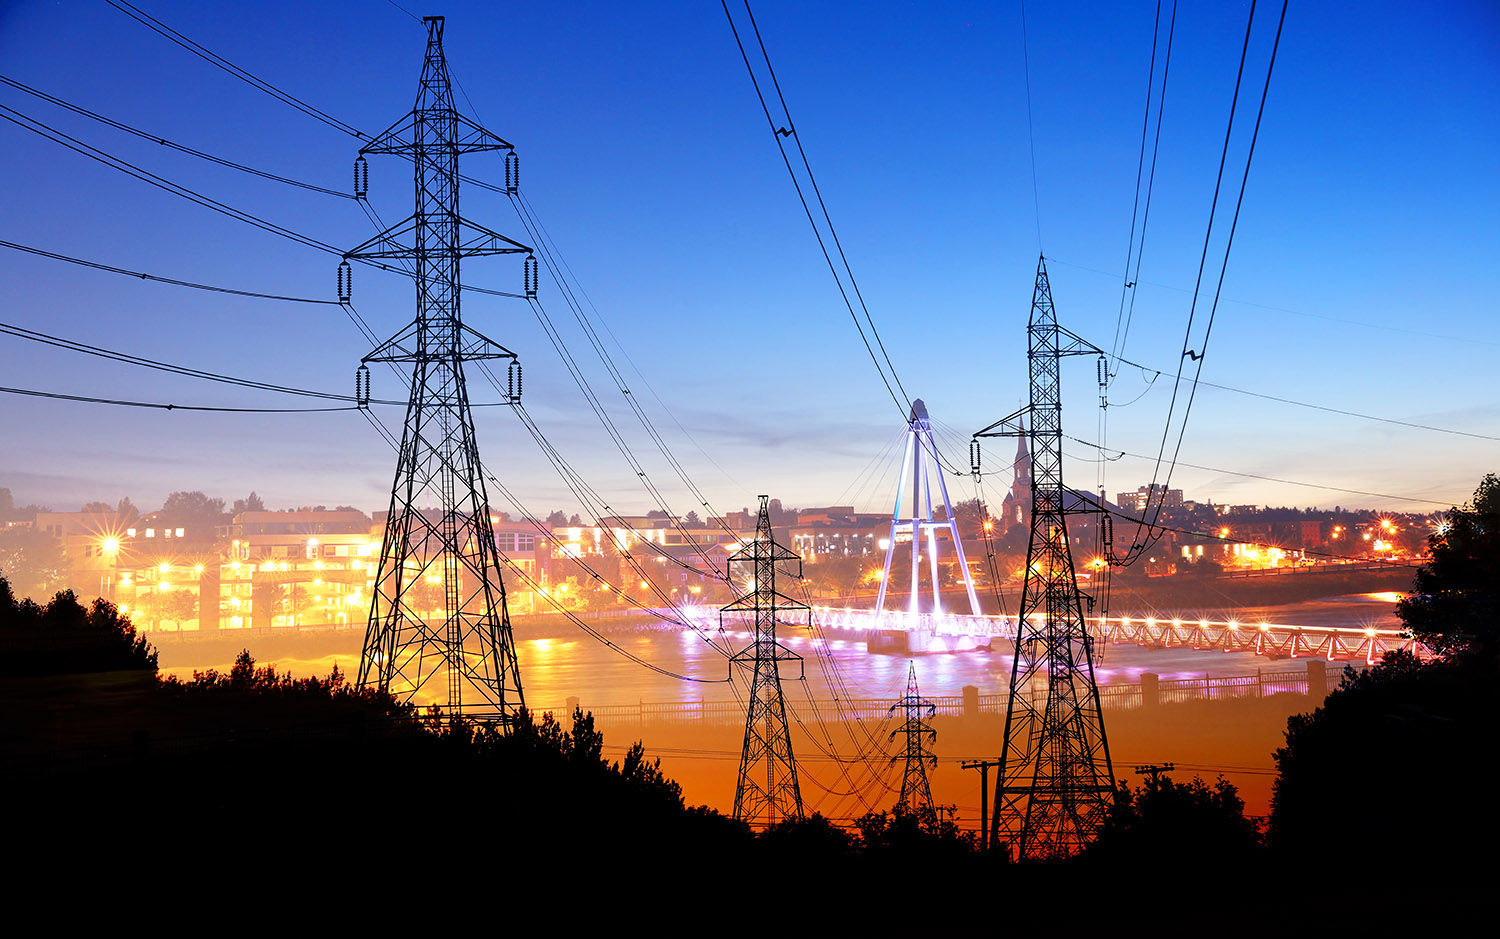 Small Town Electrification at Sunset - RF Stock Image